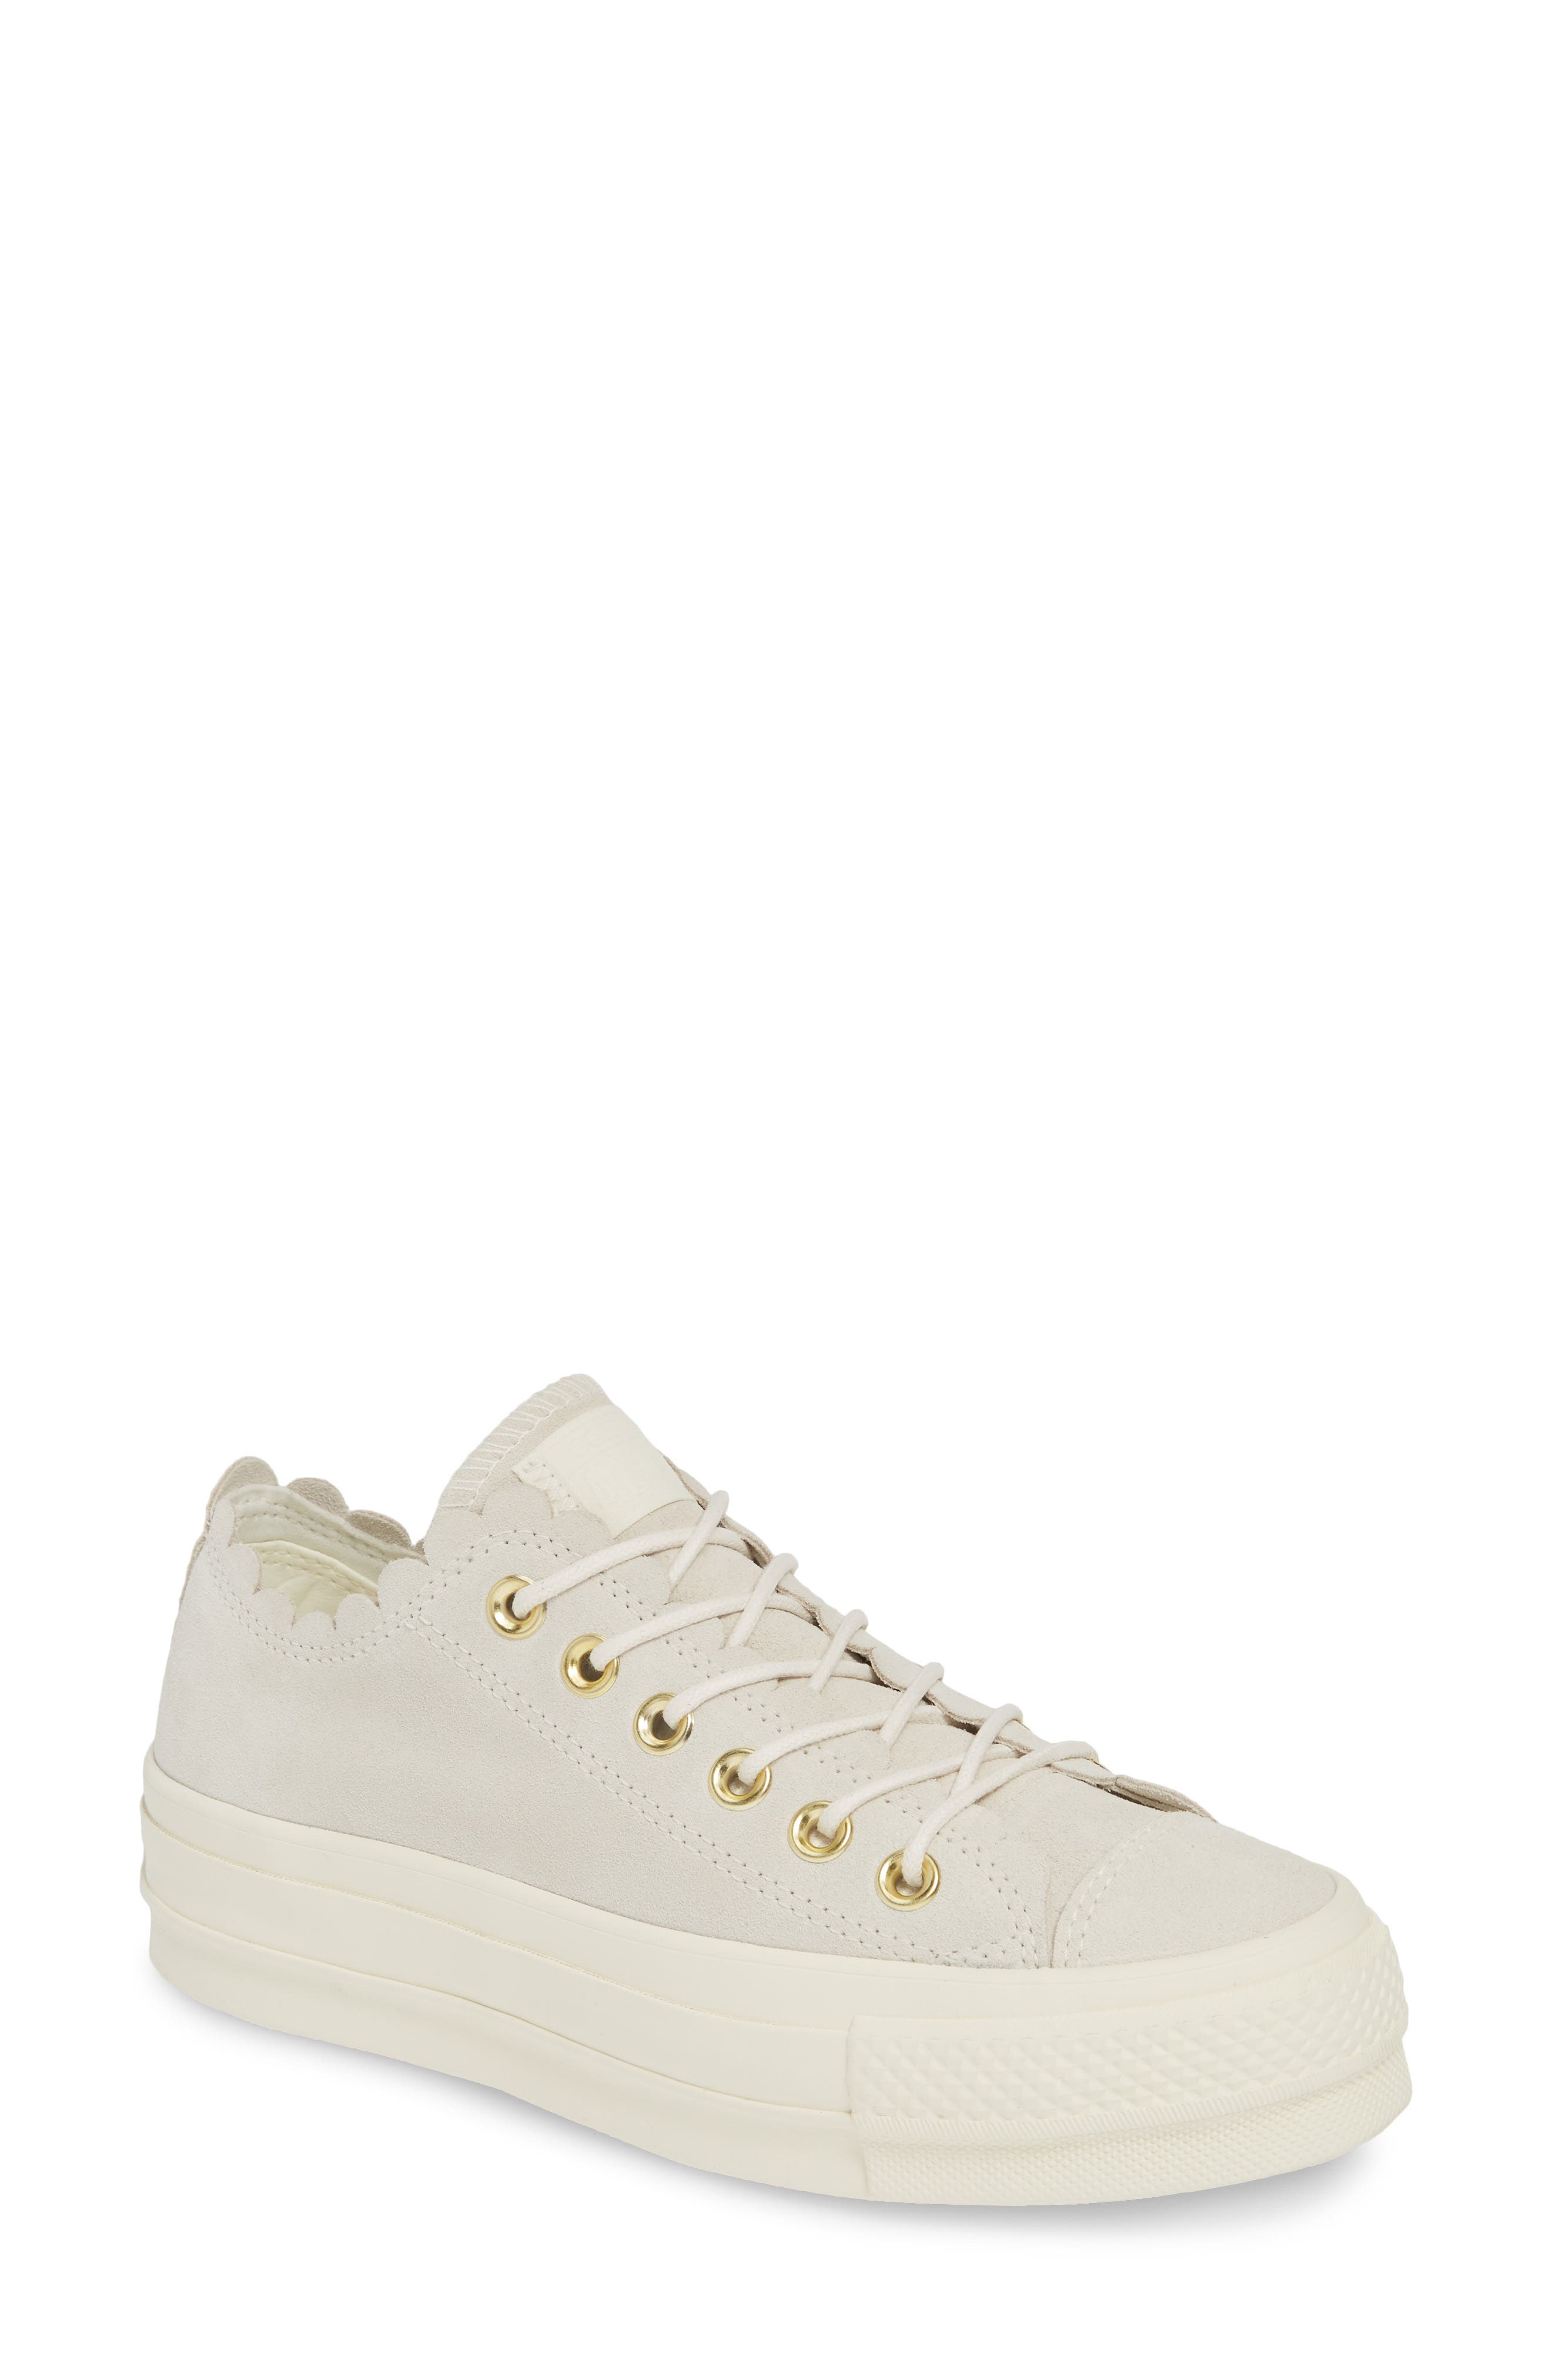 ,                             Chuck Taylor<sup>®</sup> All Star<sup>®</sup> Frilly Scallop Platform Sneaker,                             Main thumbnail 1, color,                             020